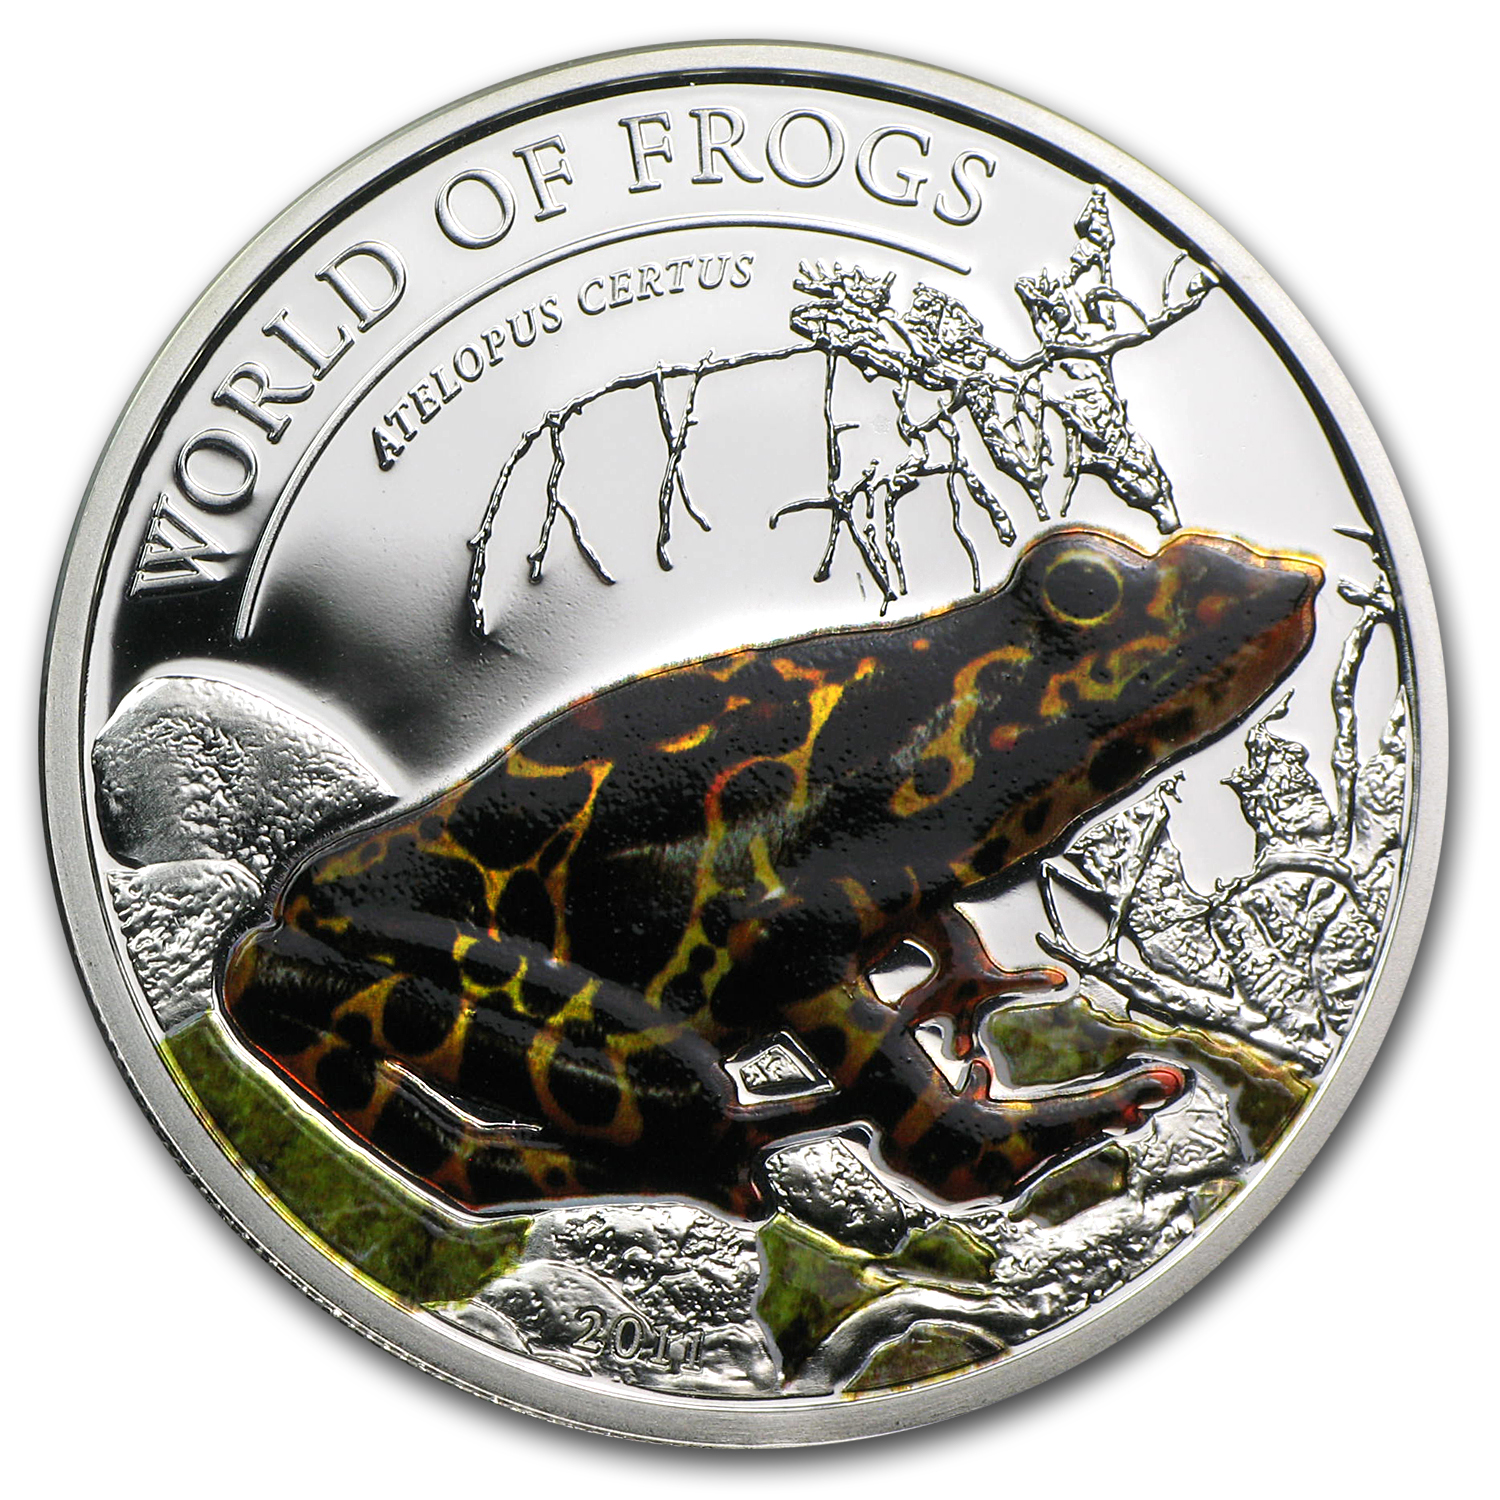 2011 Palau Proof Silver $2 World of Frogs Orange Atelopus Certus